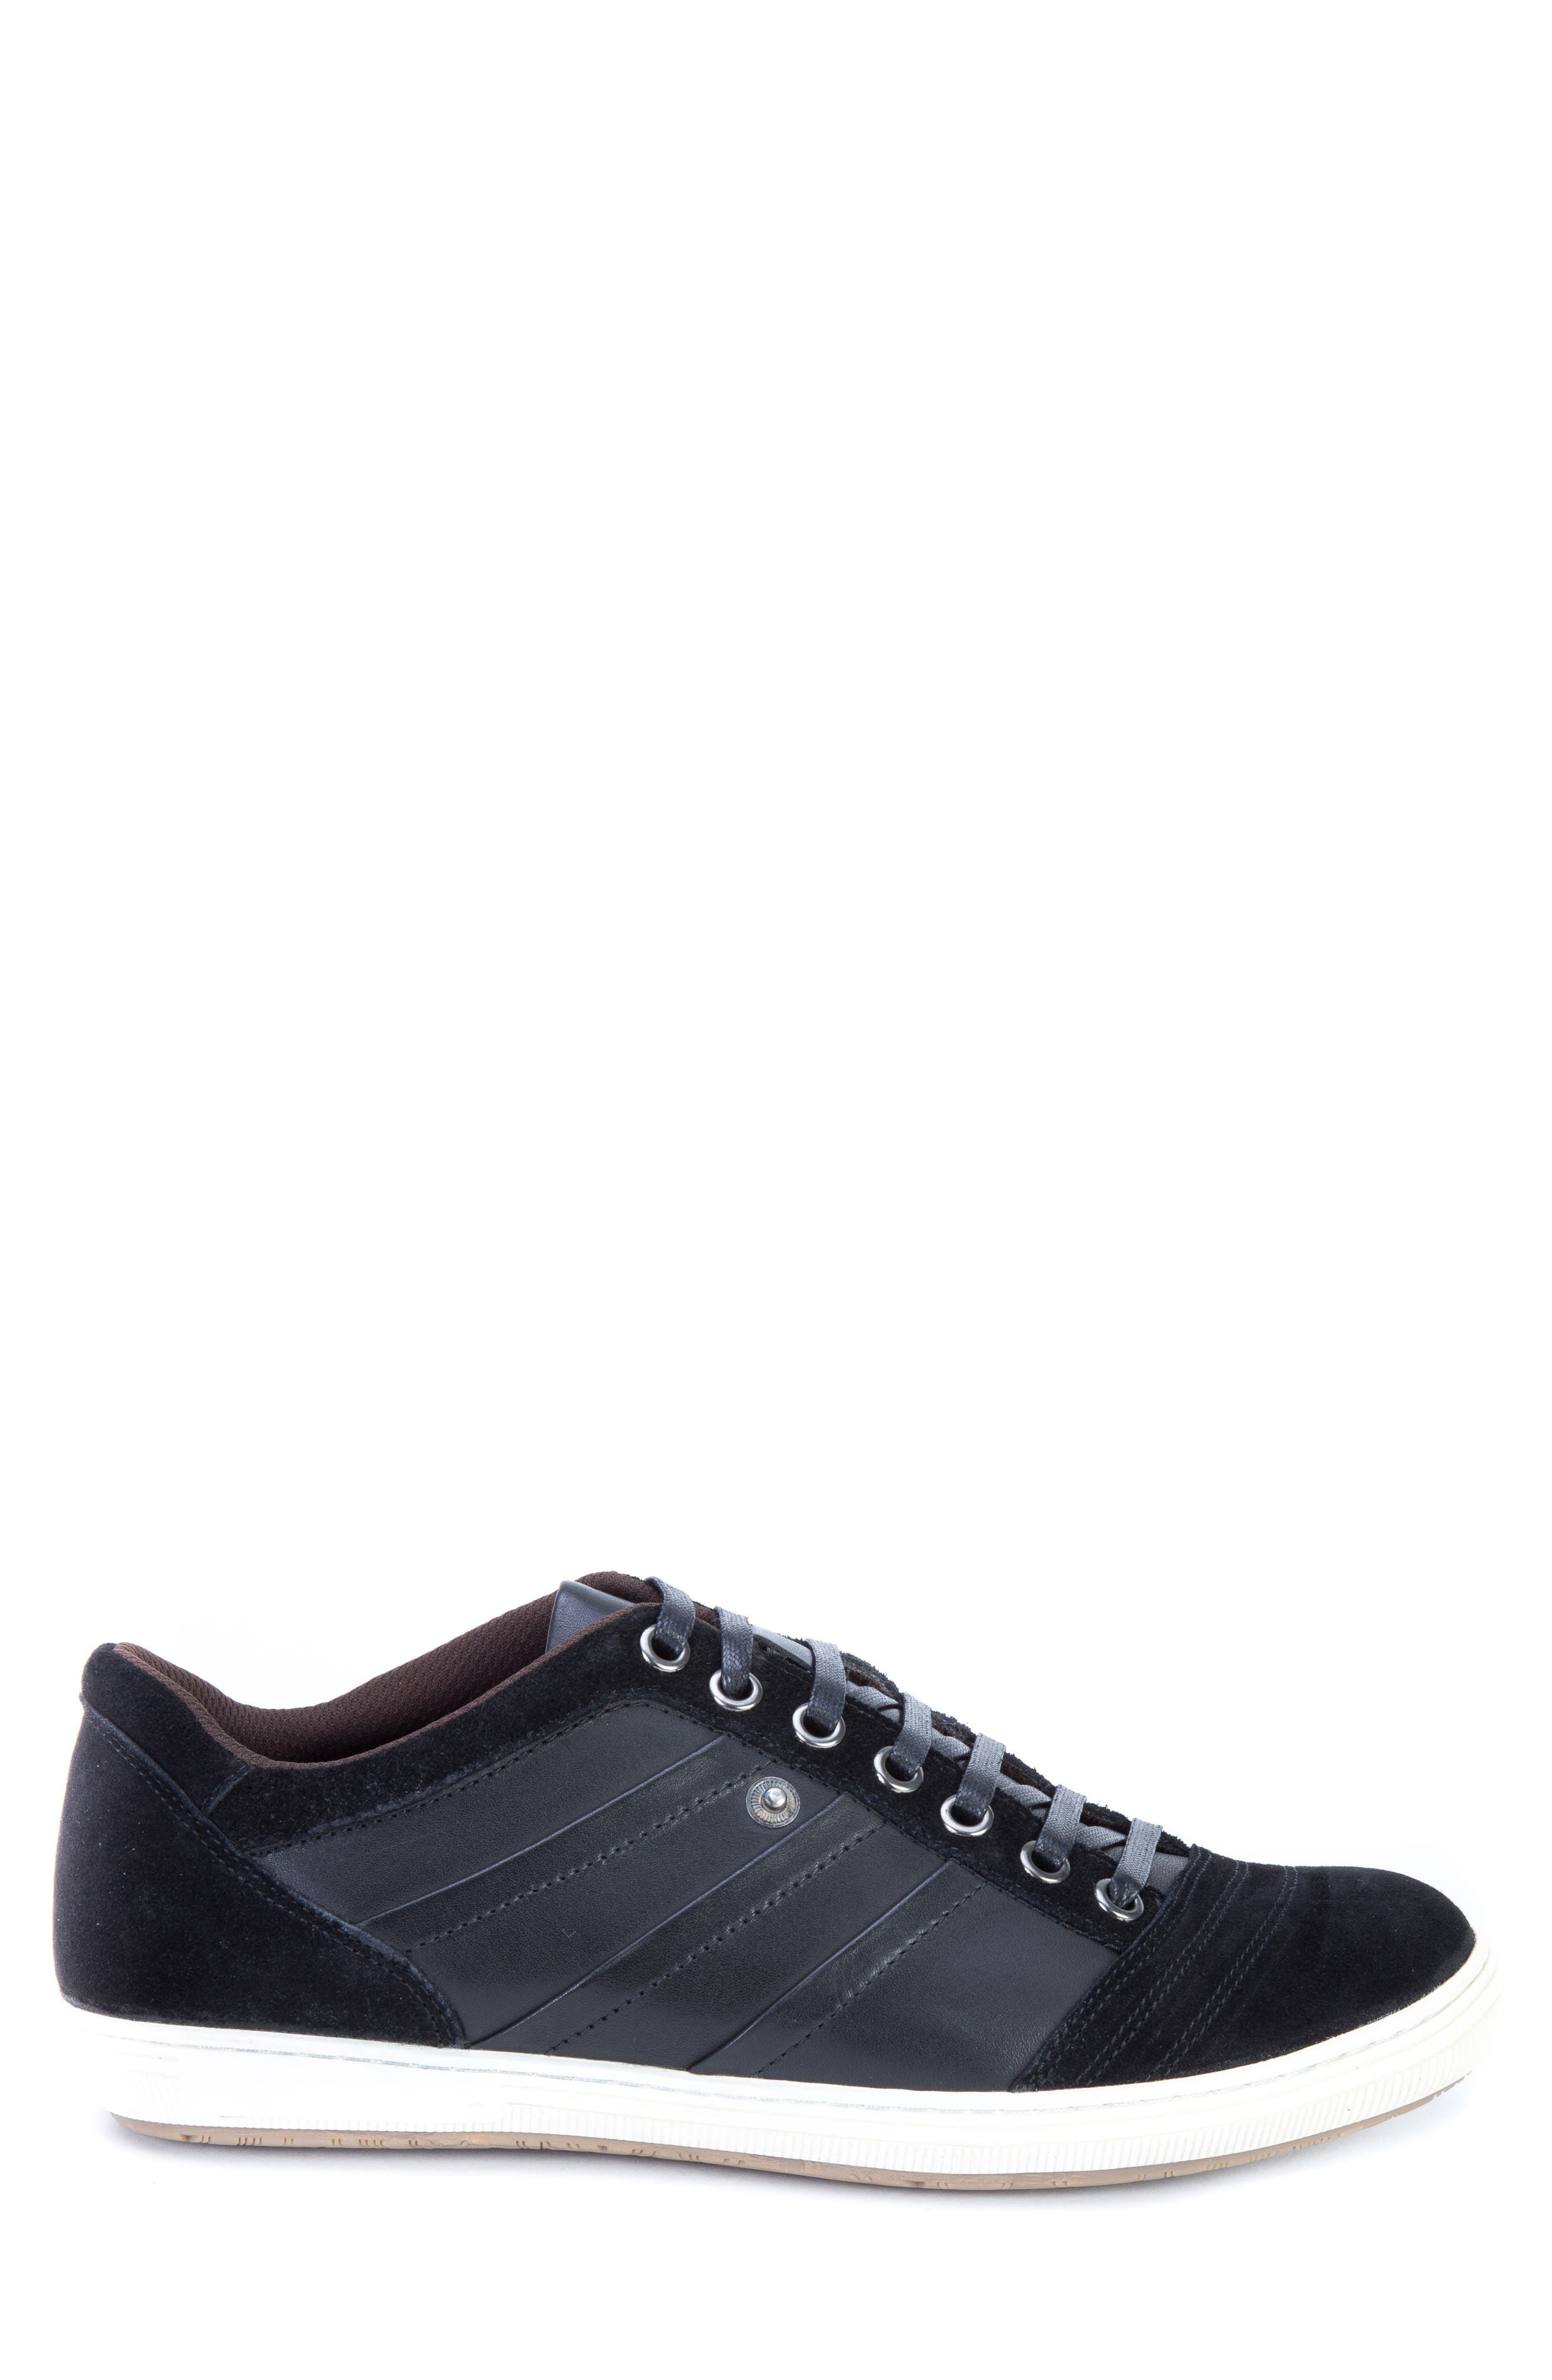 Jive Sneaker,                             Alternate thumbnail 3, color,                             Black Leather/Suede